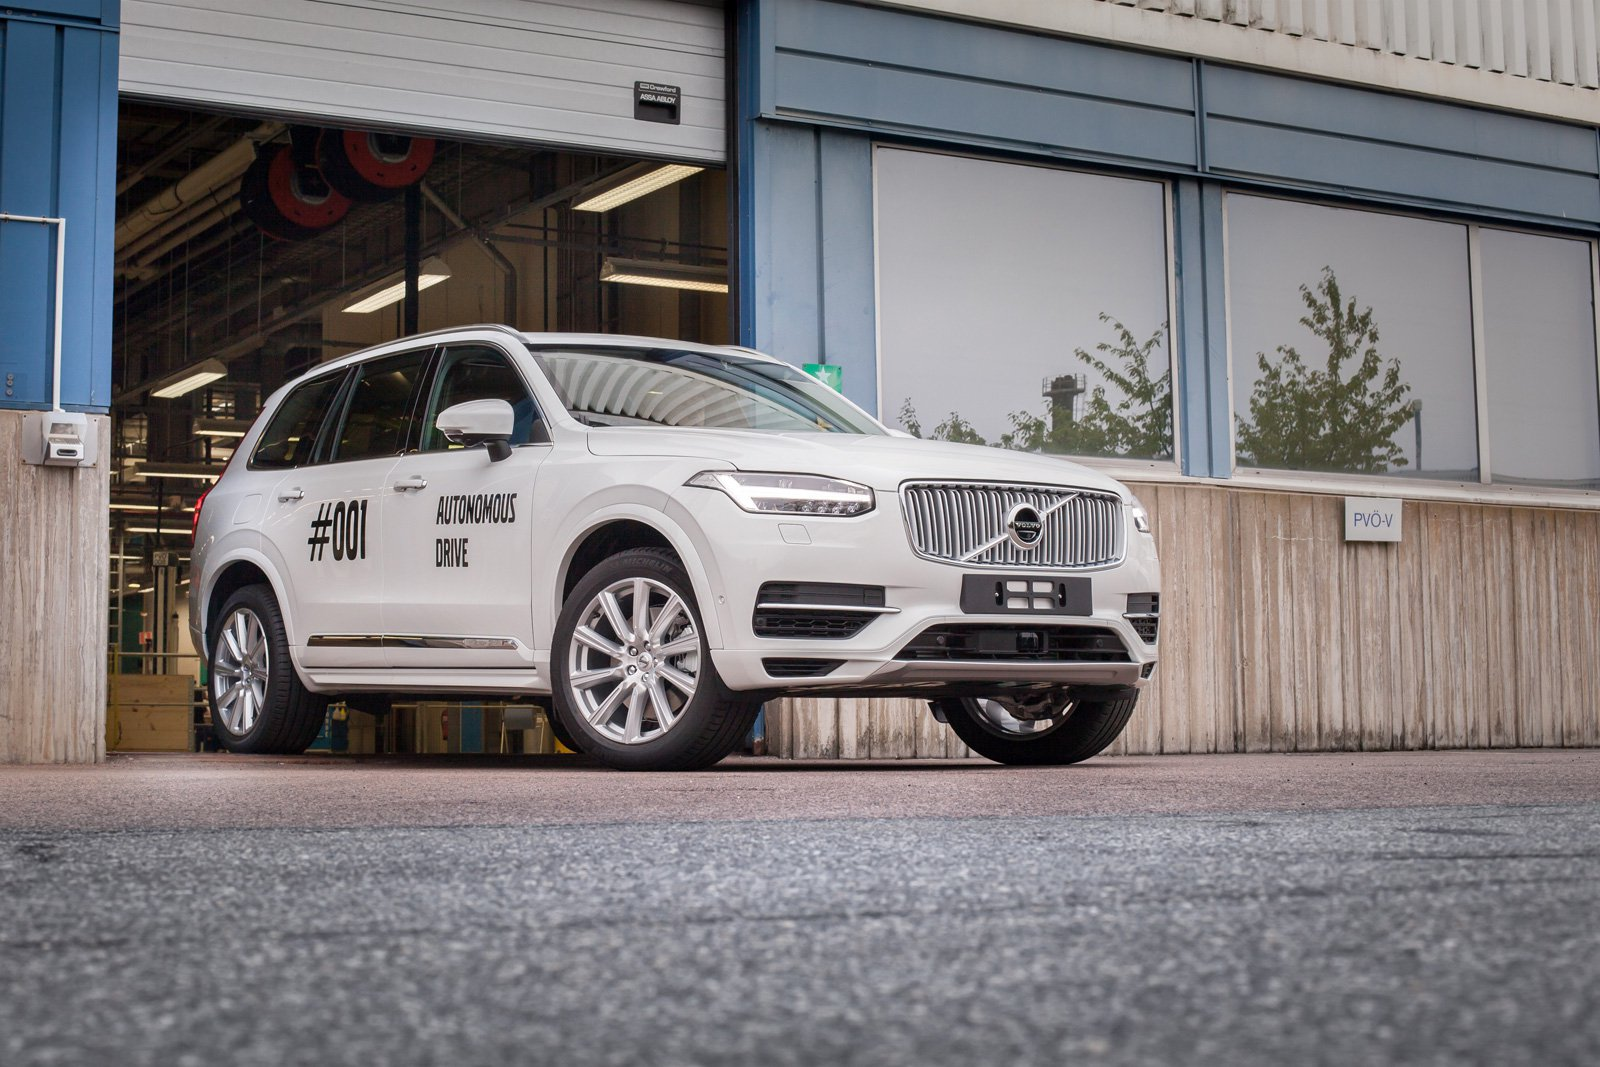 Volvo's Self-Driving Car Project, Real People and Real Roads